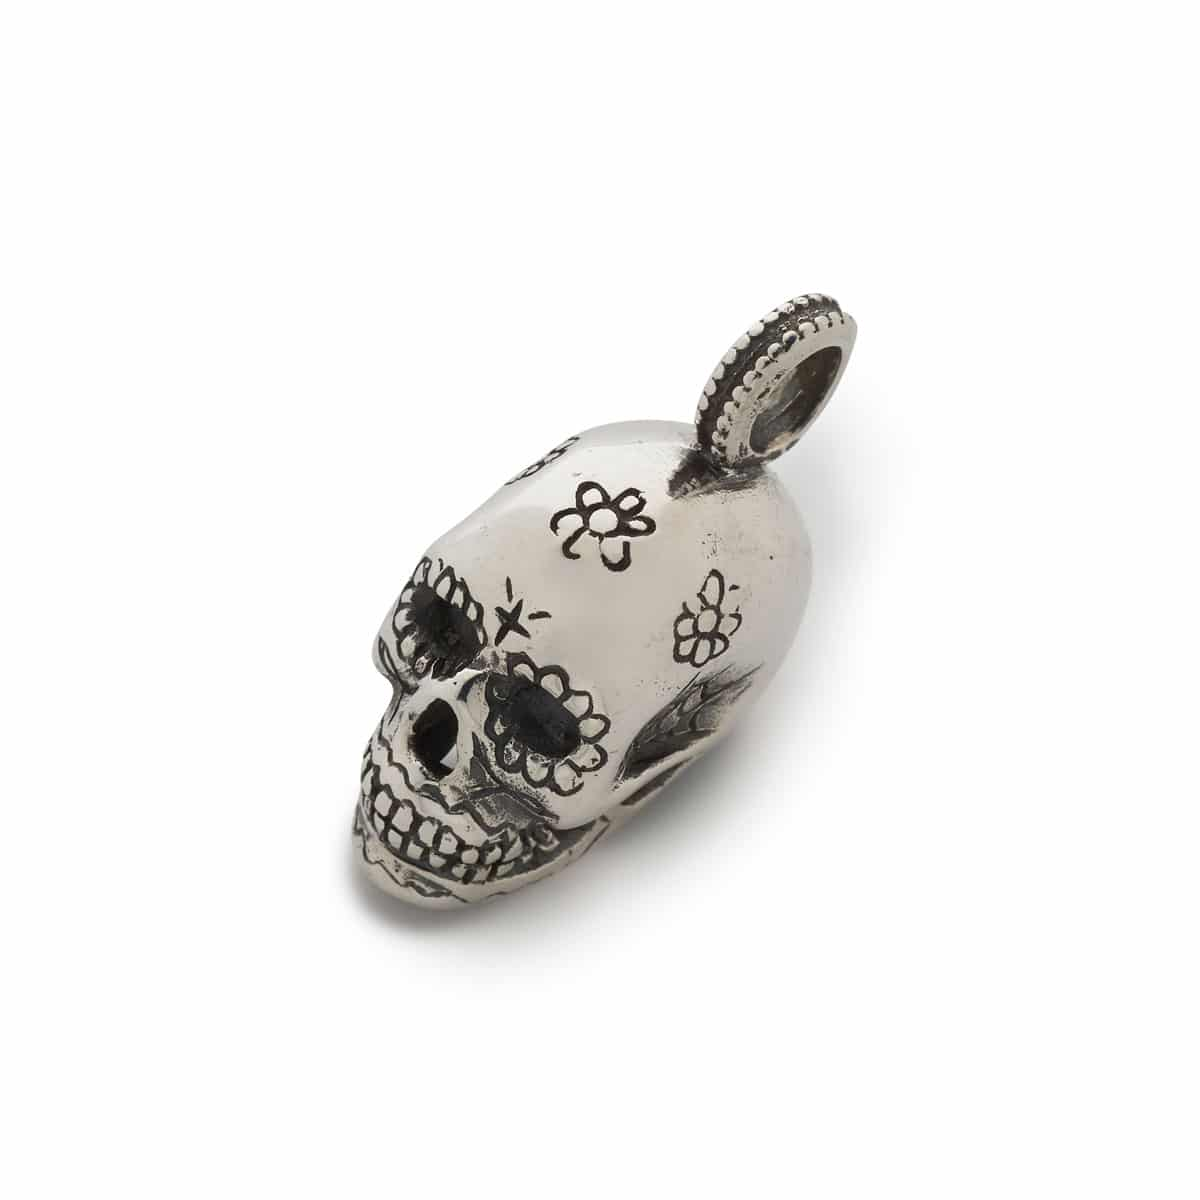 necklace skull promotion friend fine silver hot euphorium jewelry sales pendant sterling gift pure product fashion sale send male